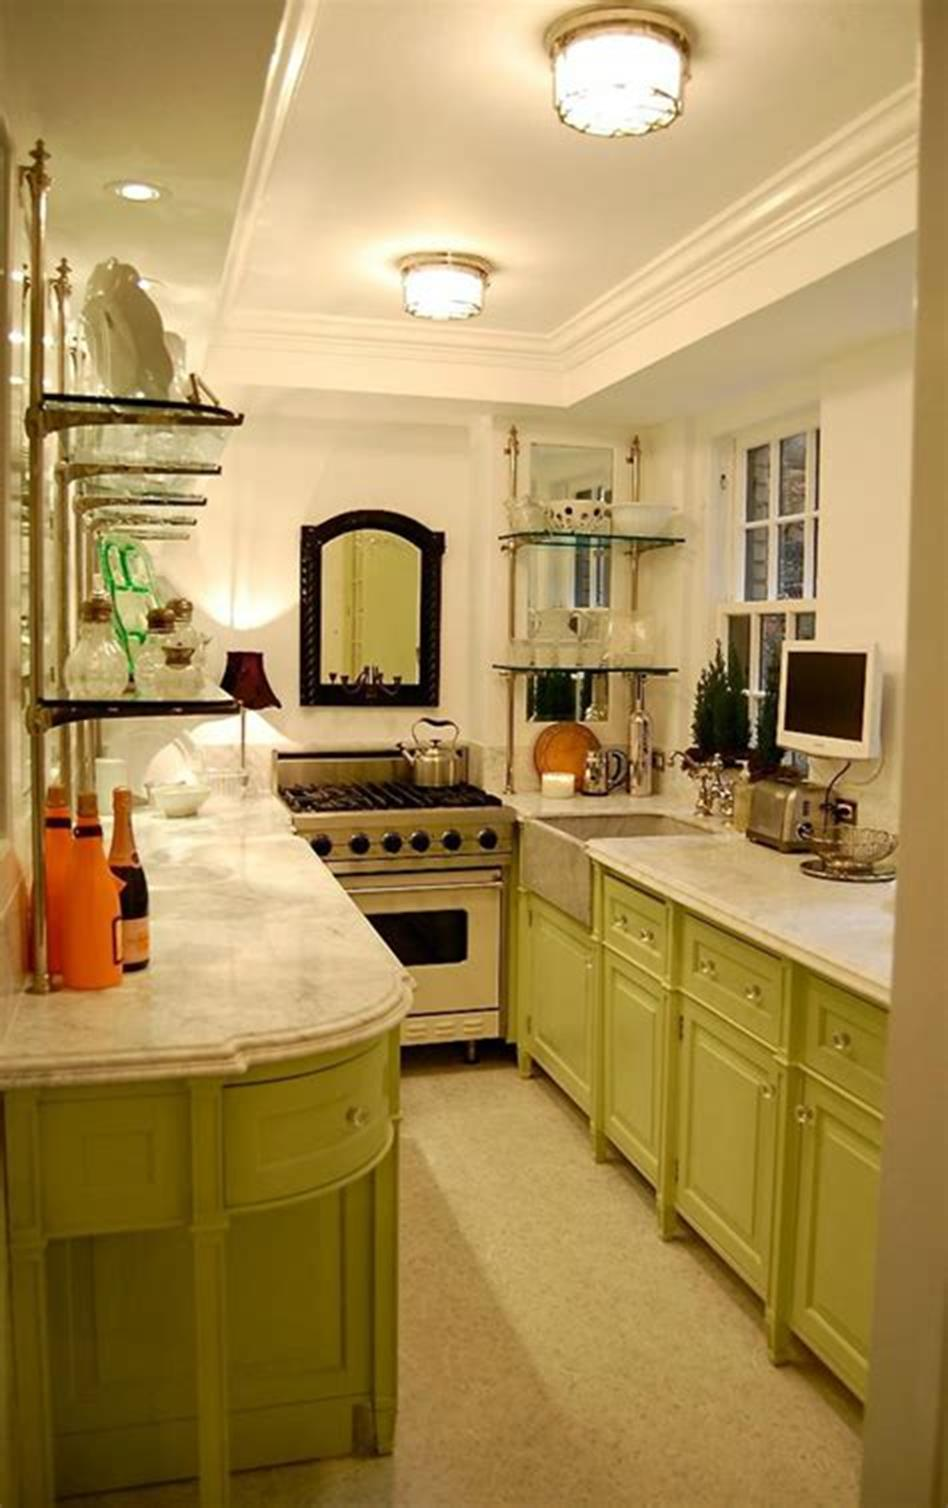 43 amazing kitchen remodeling ideas for small kitchens